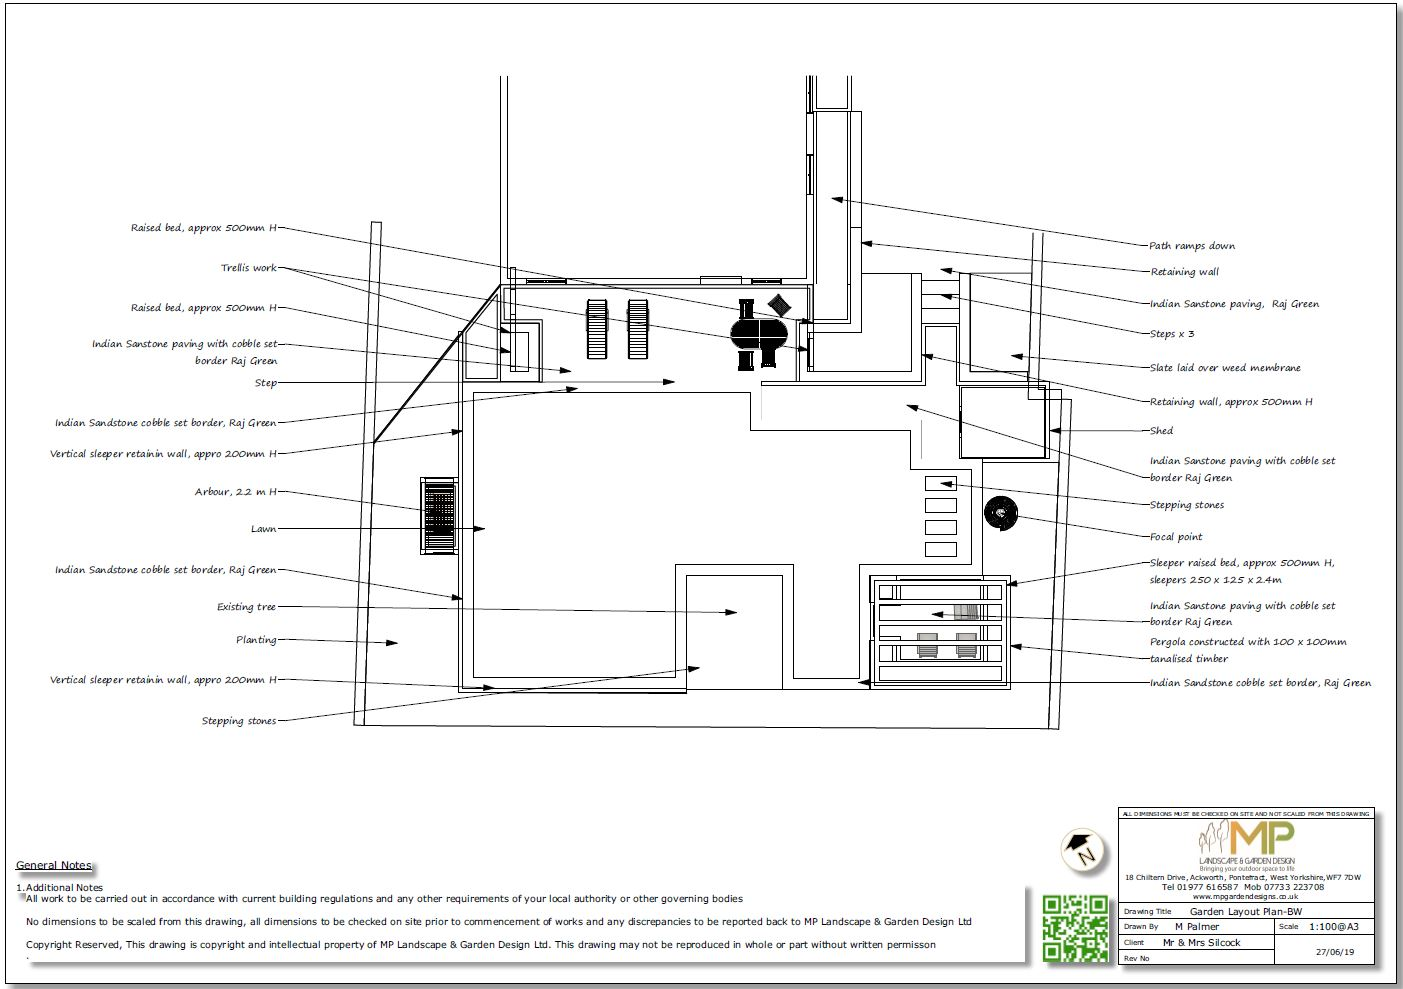 2, Garden layout plan, black and white for a property in Mickelfield